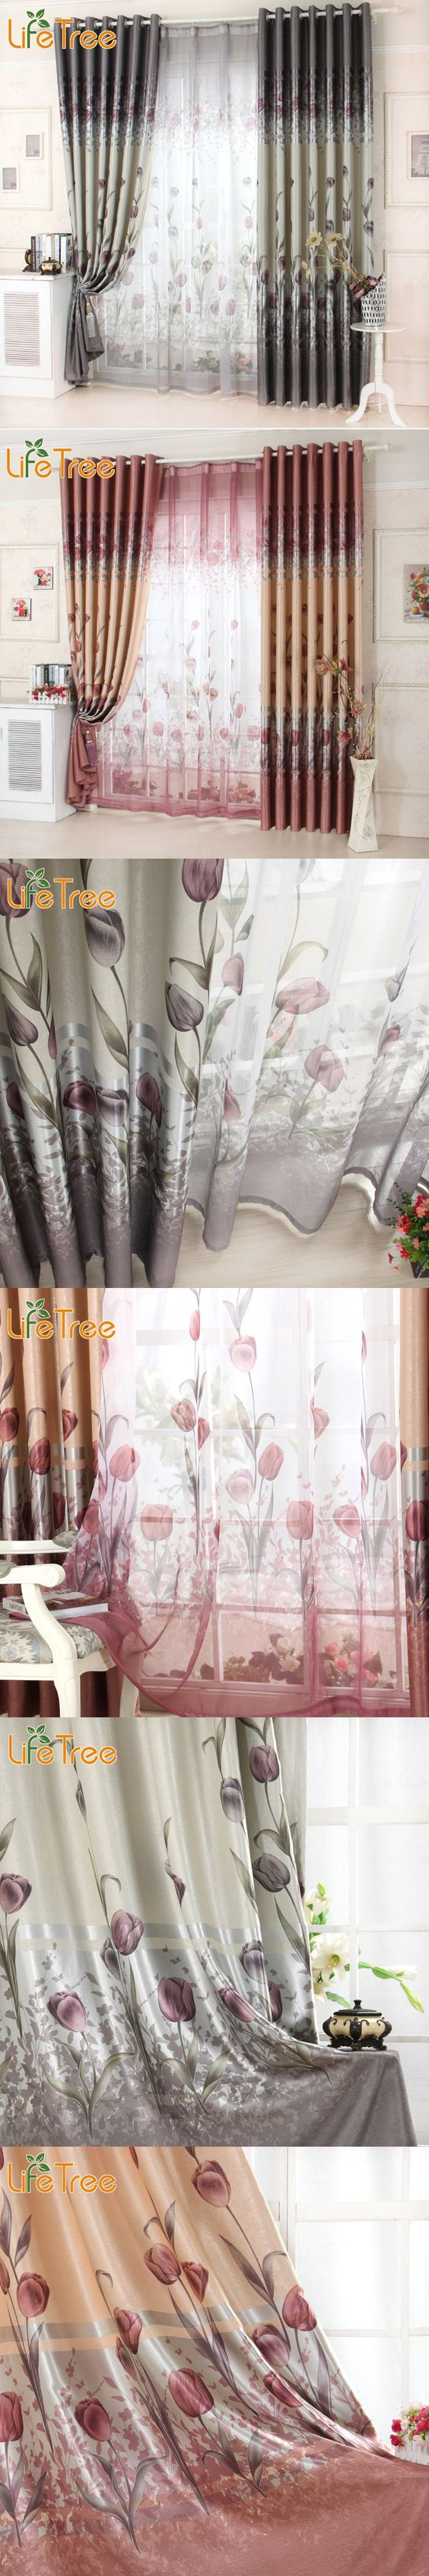 Blackout curtains for bedroom - Luxury Window Curtains For Living Room Tulip Printed Bedroom Blackout Curtains Tulle Kitchen Sheer Drapes 15 7